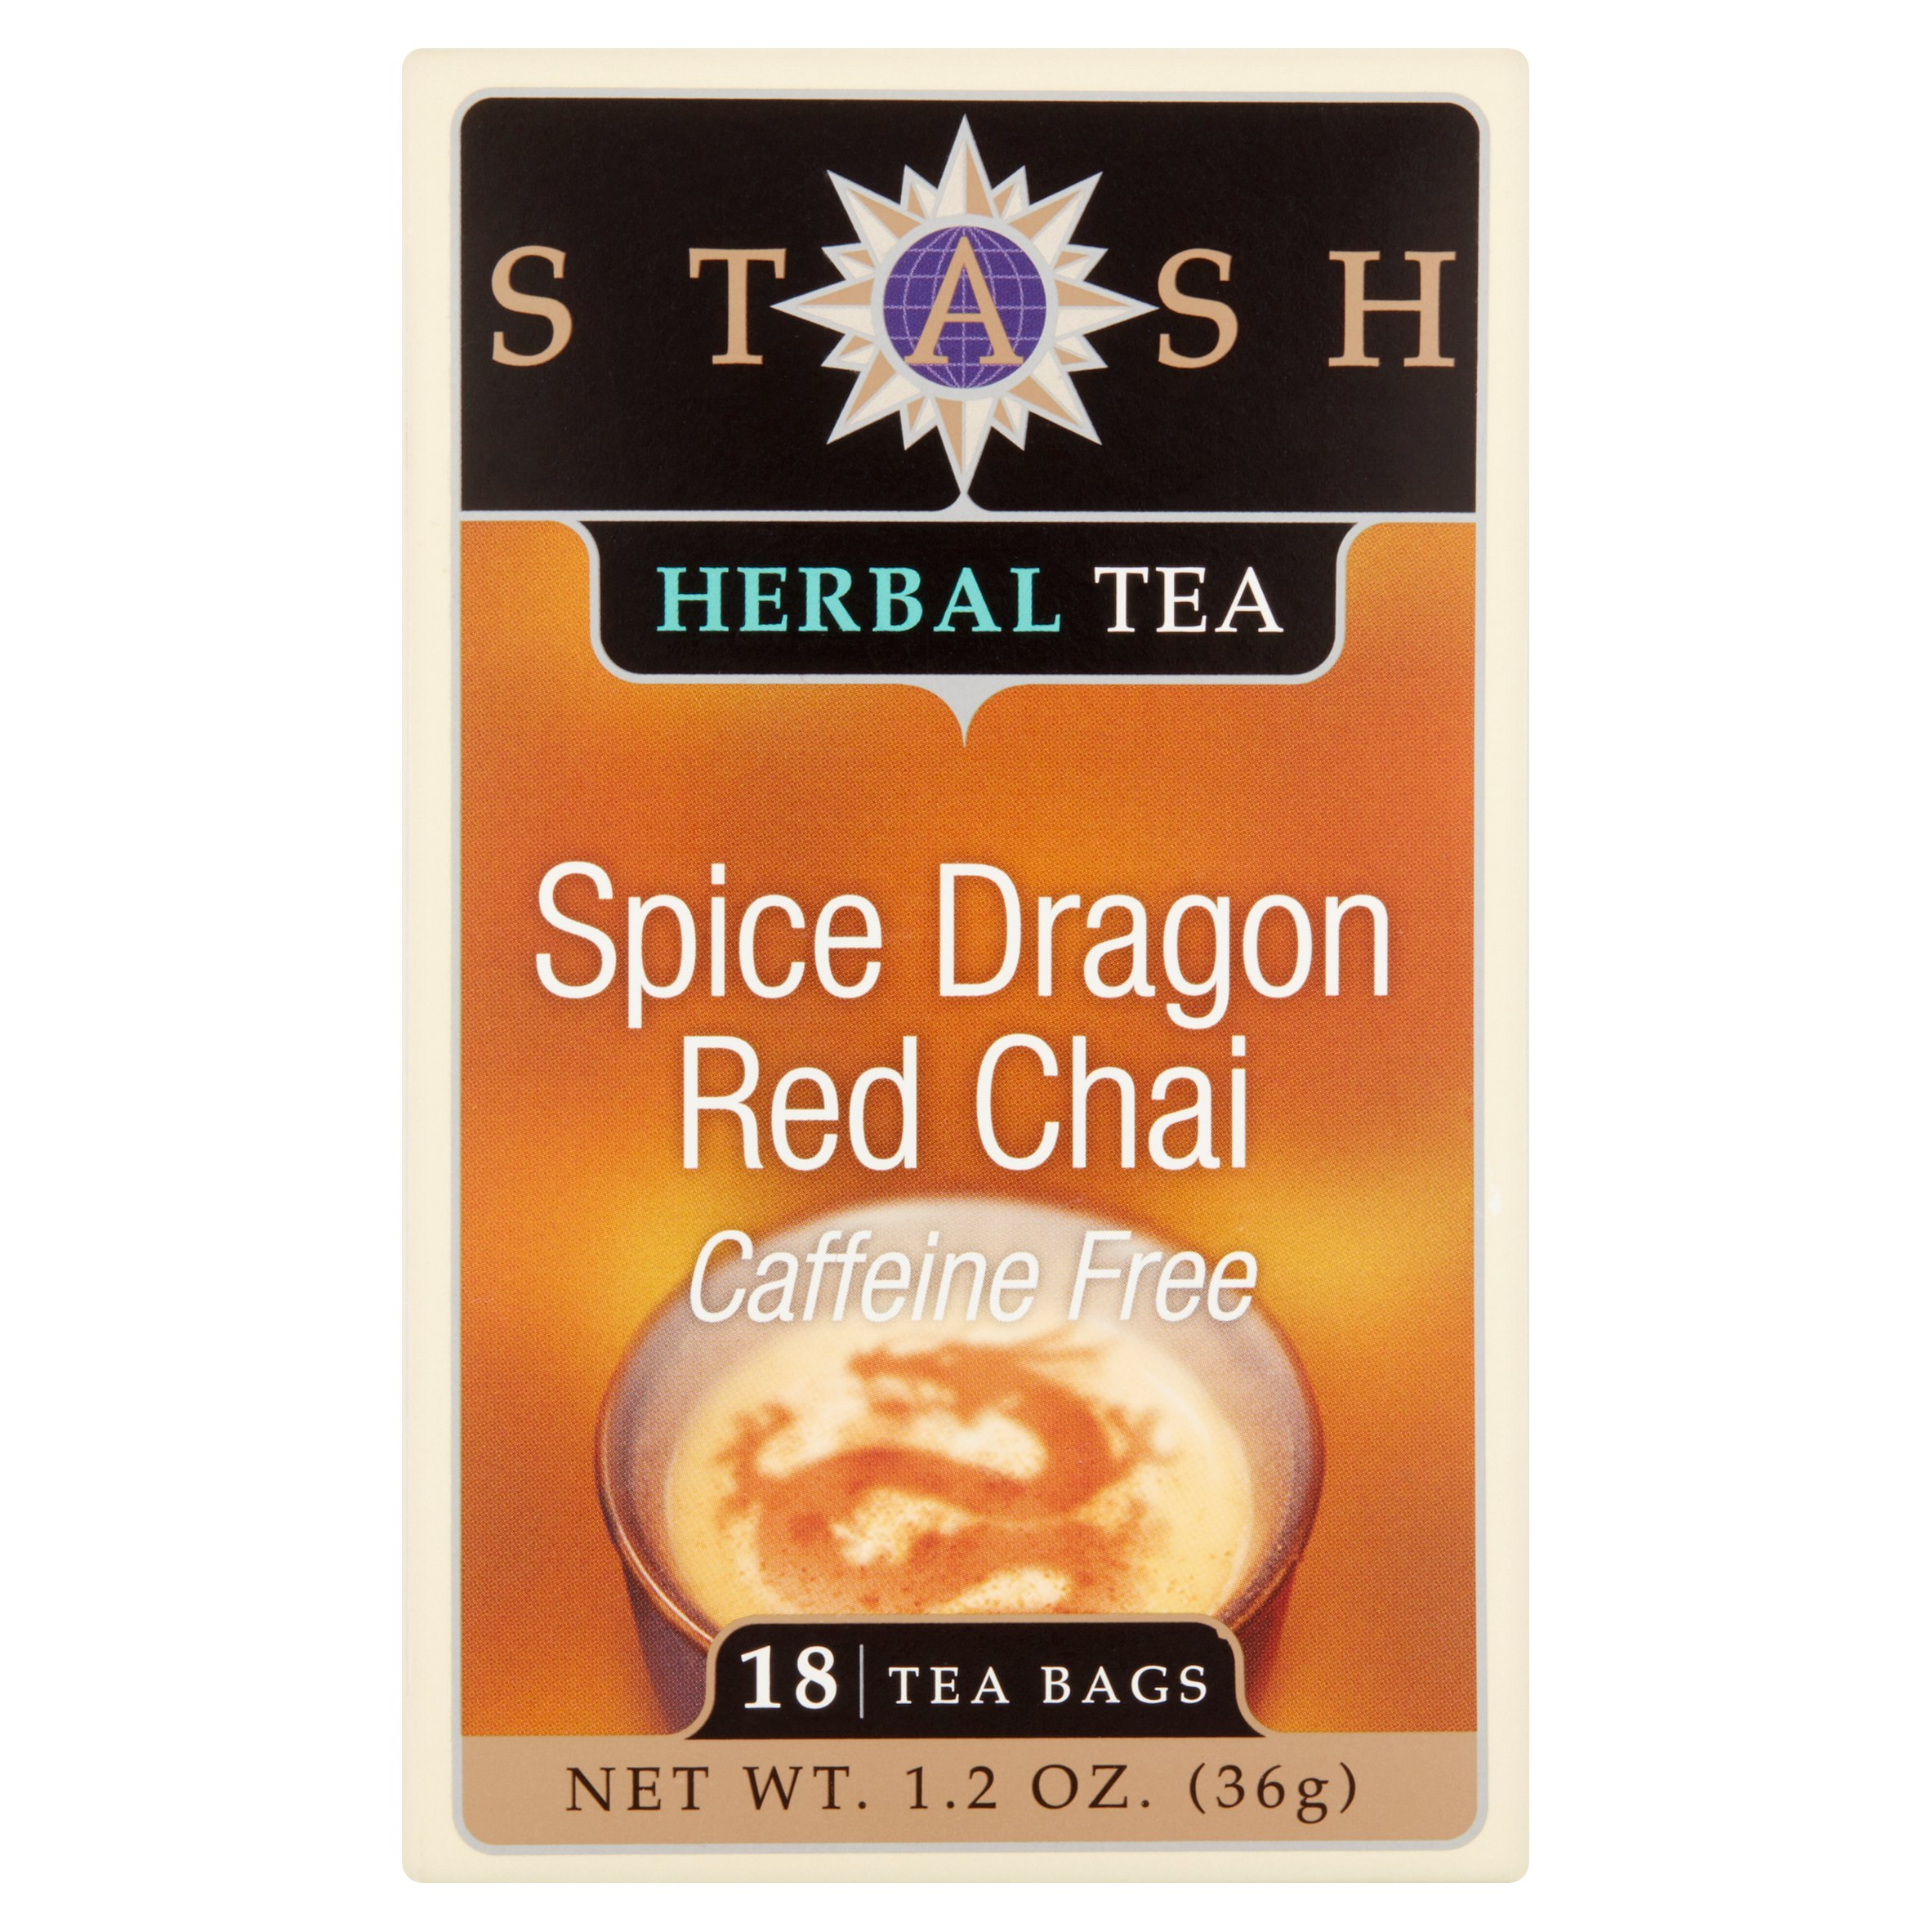 Stash Tea Spice Dragon Red Chai Herbal Tea, 18 Tea Bags, 36g